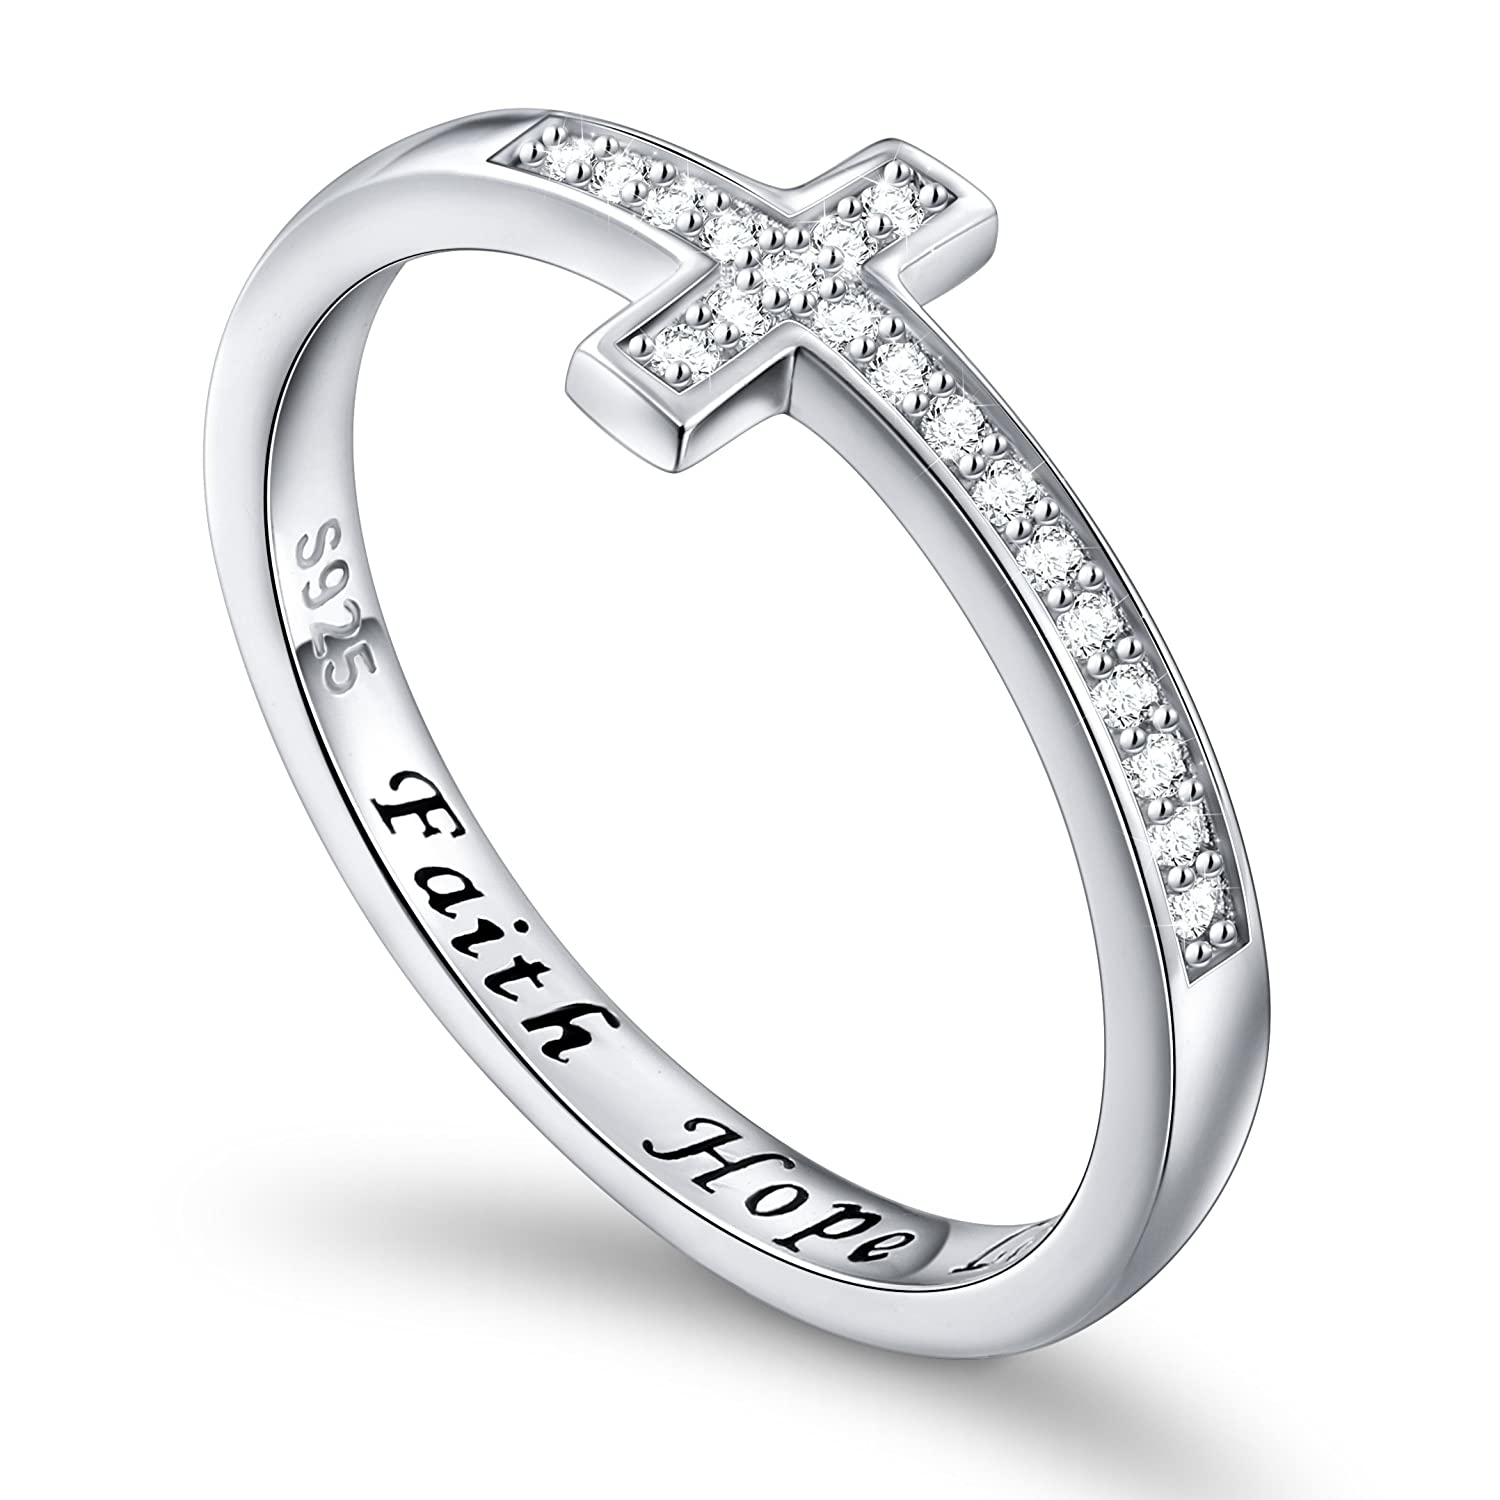 DAOCHONG Inspirational Jewelry Sterling Silver Engraved Faith Hope Love Sideway Cross Ring, Size 5-10 harmonyball jewelry